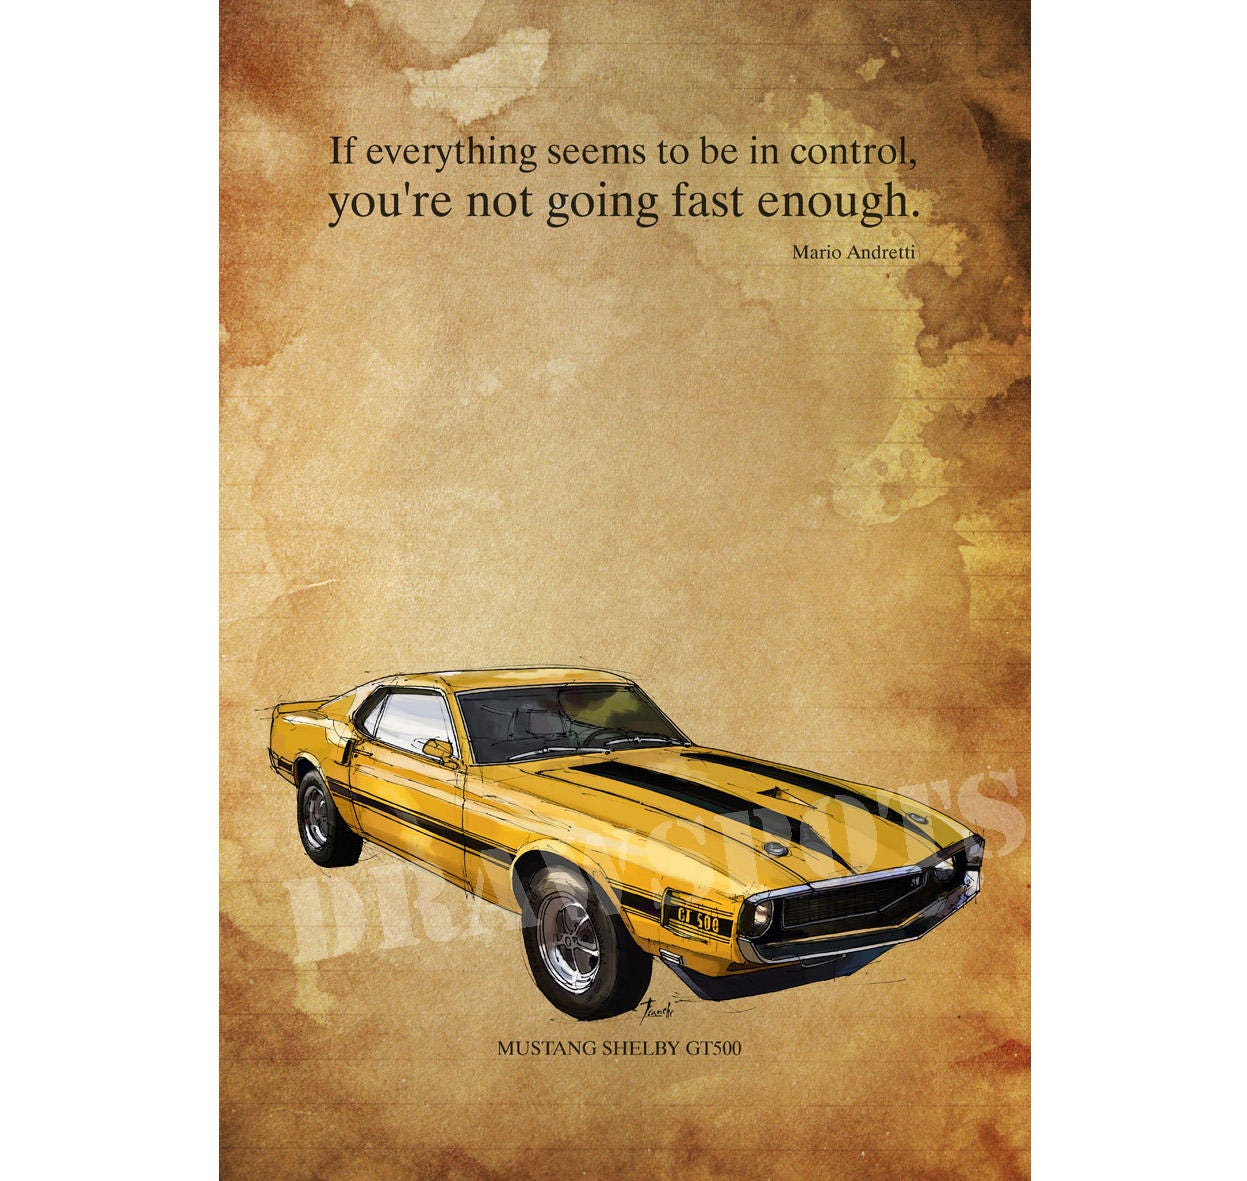 MUSTANG GT500 Yellow and black.Senna quote If everything